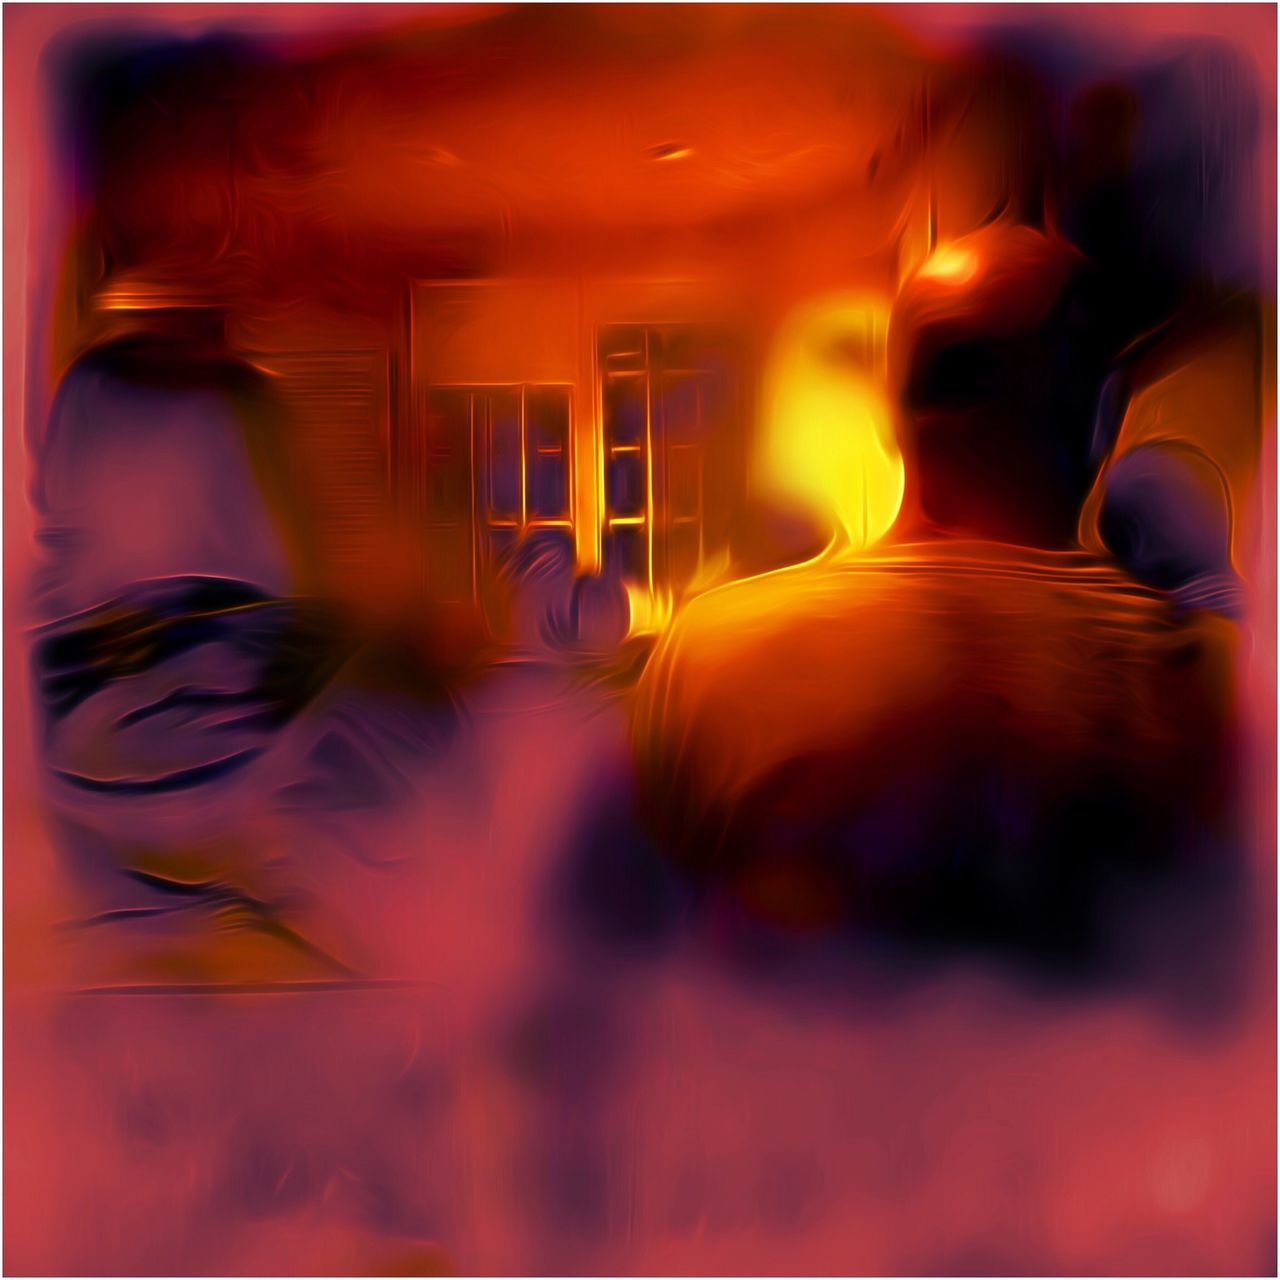 Meeting Hall - Silverlake Ca - Friday 8:30pm Photograph TangledFX Digital Art Abstract Filters Distorted Reality Finger Drawn Night Surreal Colors Meetinghall Light And Dark Seating